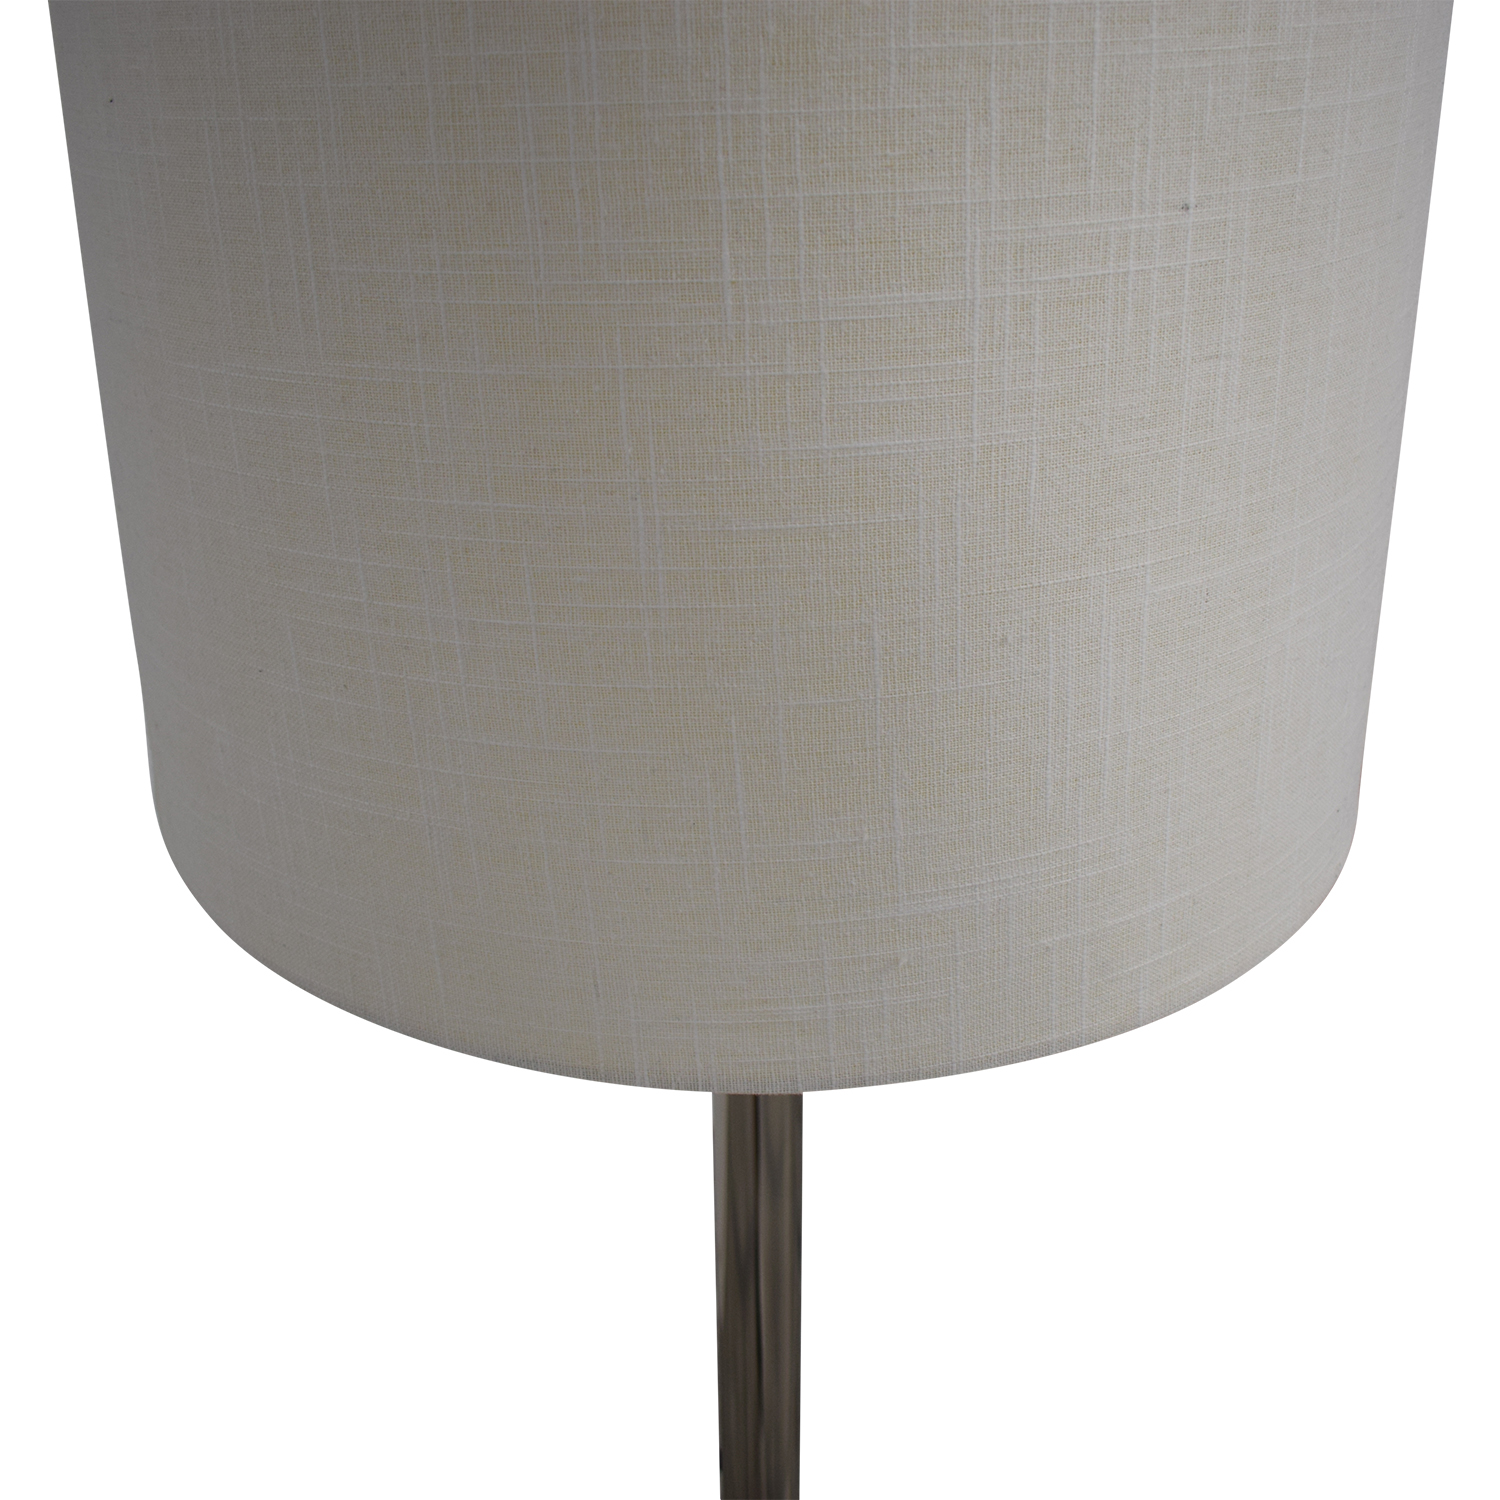 Crate & Barrel Claire Floor Lamp / Decor